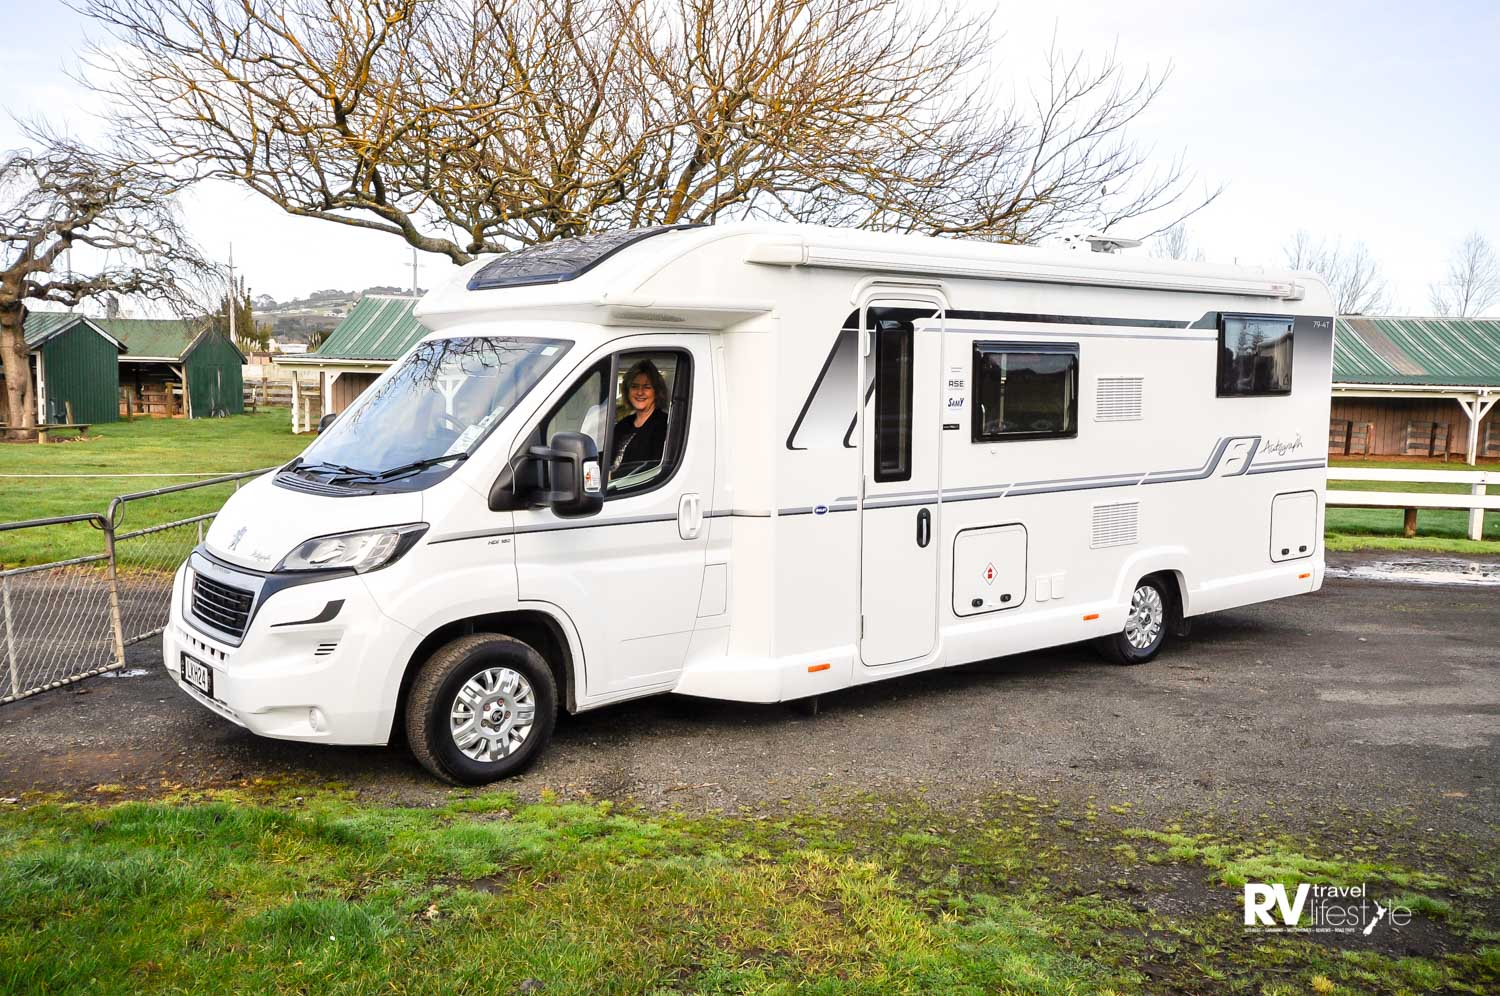 An impressive unit, this the 7988mm 79-T 4 berth with single beds